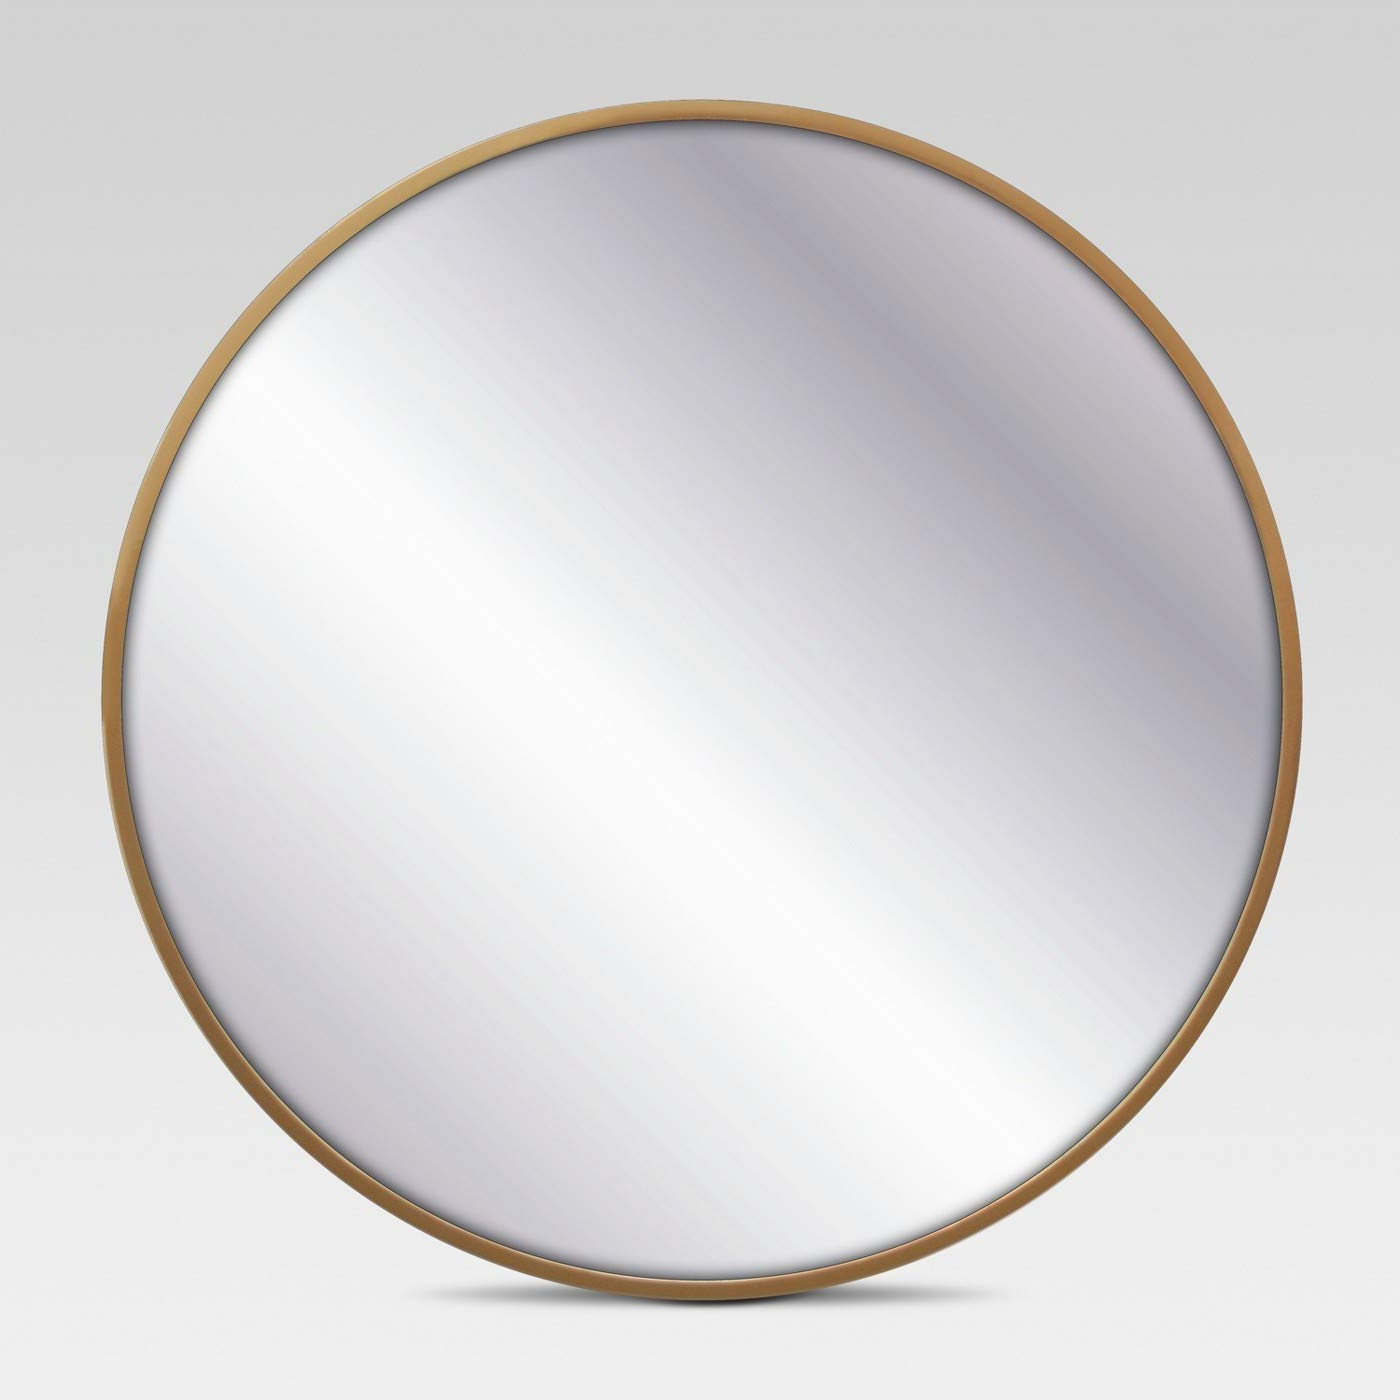 """Round Decorative Wall Mirrors Within Well Liked Project 62™ Round Decorative Wall Mirror (brass, 18"""") (View 14 of 20)"""